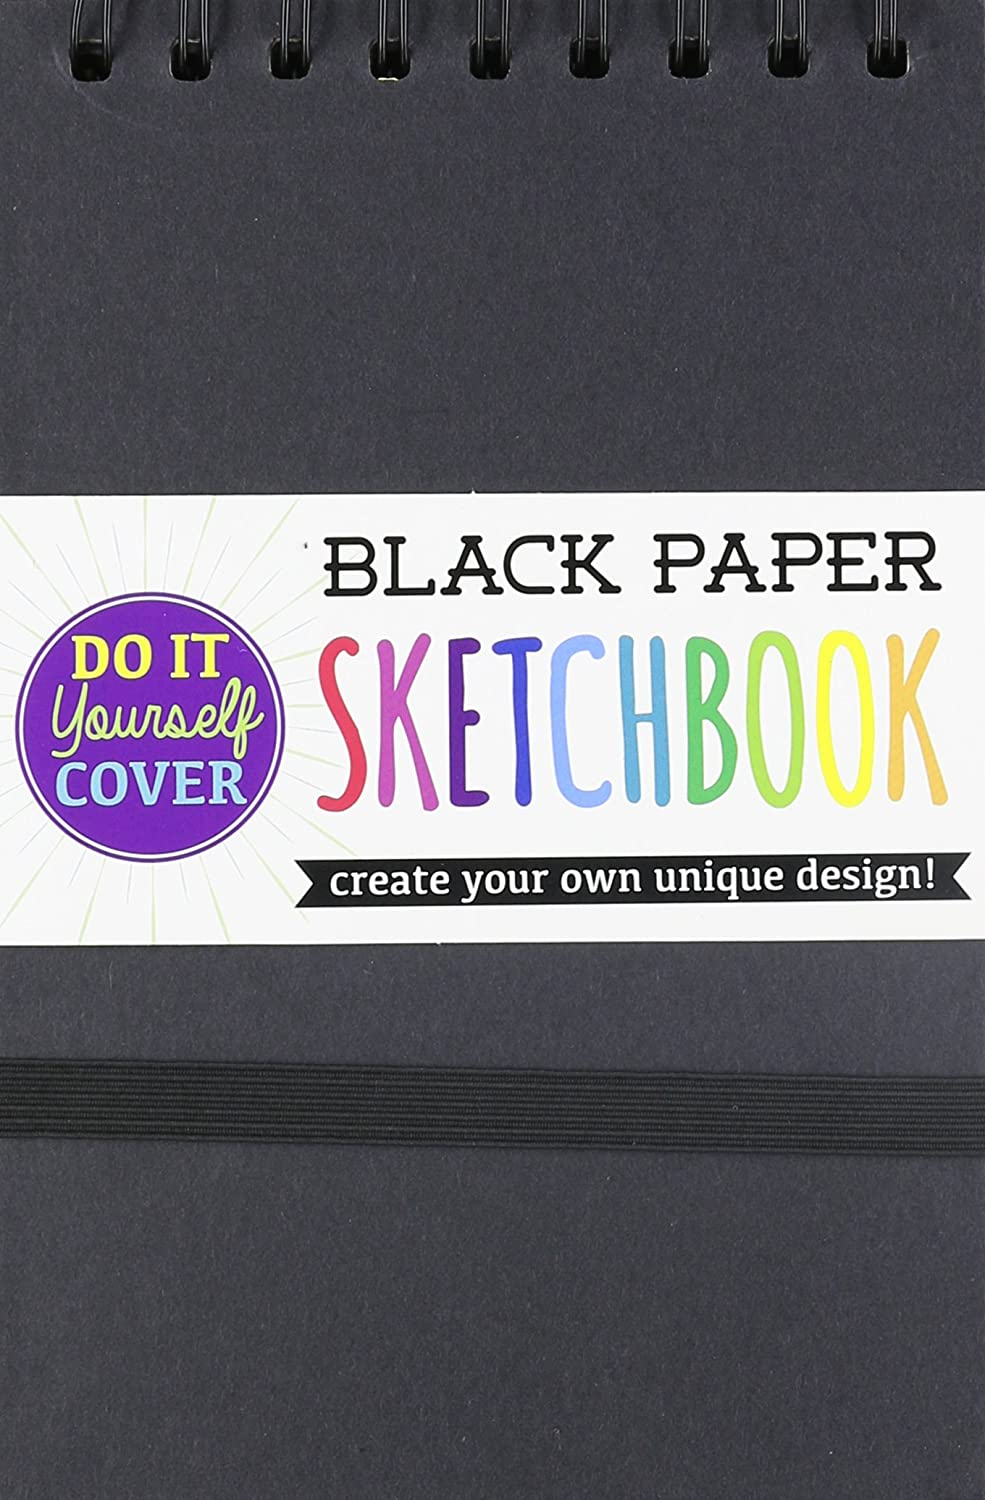 Bb-DIY Sketchbk - Small - Blac International Arrivals Ooly 118-102 NON-CLASSIFIABLE